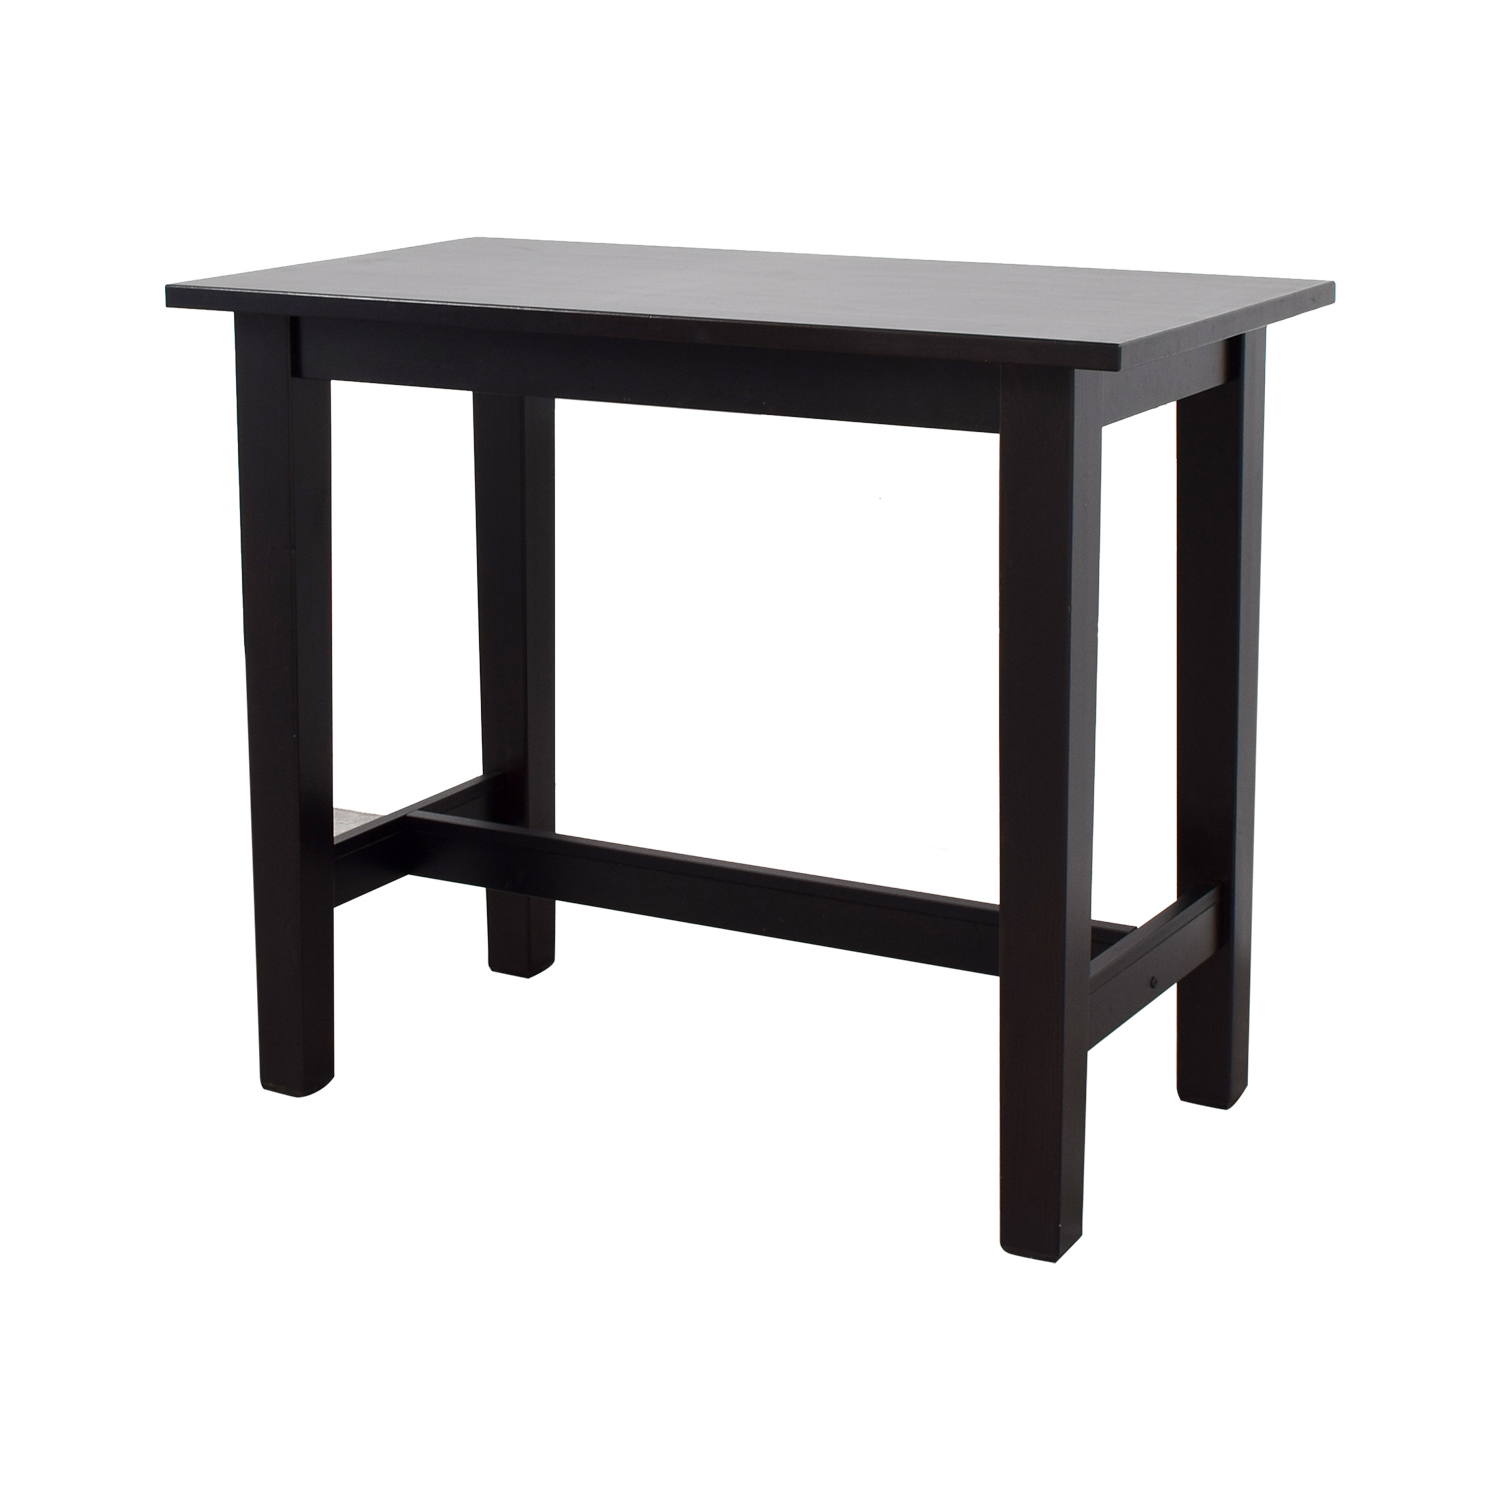 IKEA Pub Table / Dinner Tables